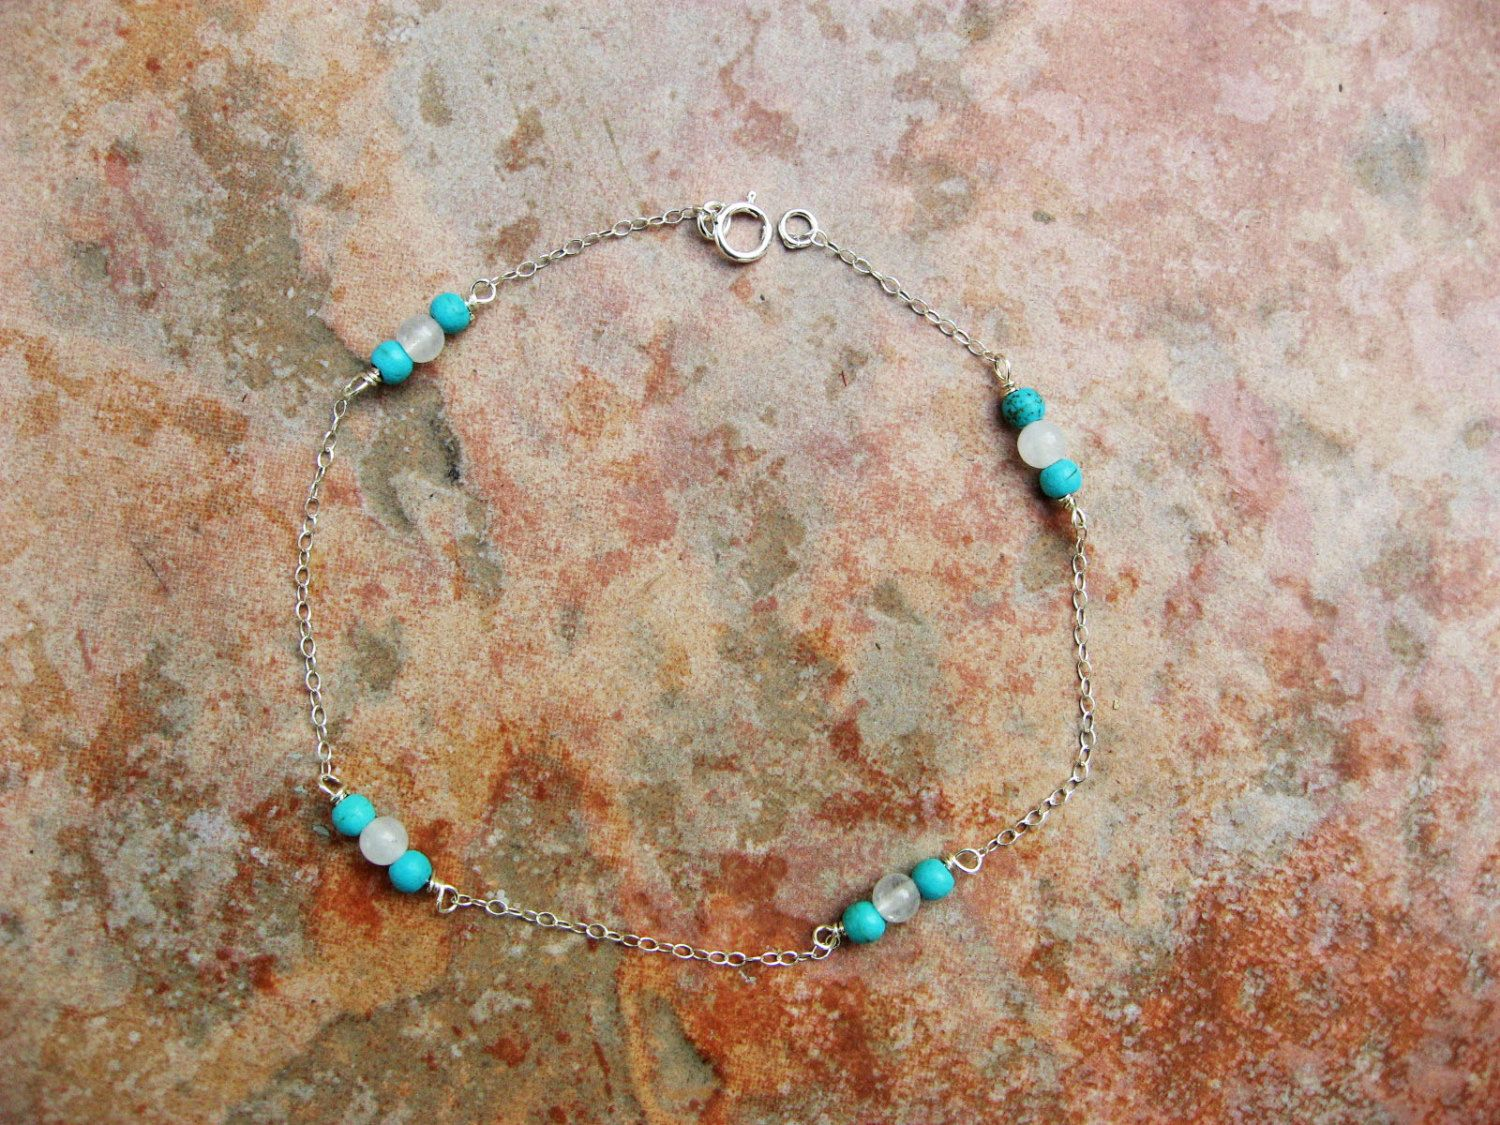 ankle jewelry bracelets love gold anklet and infinity bridal bridesmaid turquoise panopia olizz bracelet